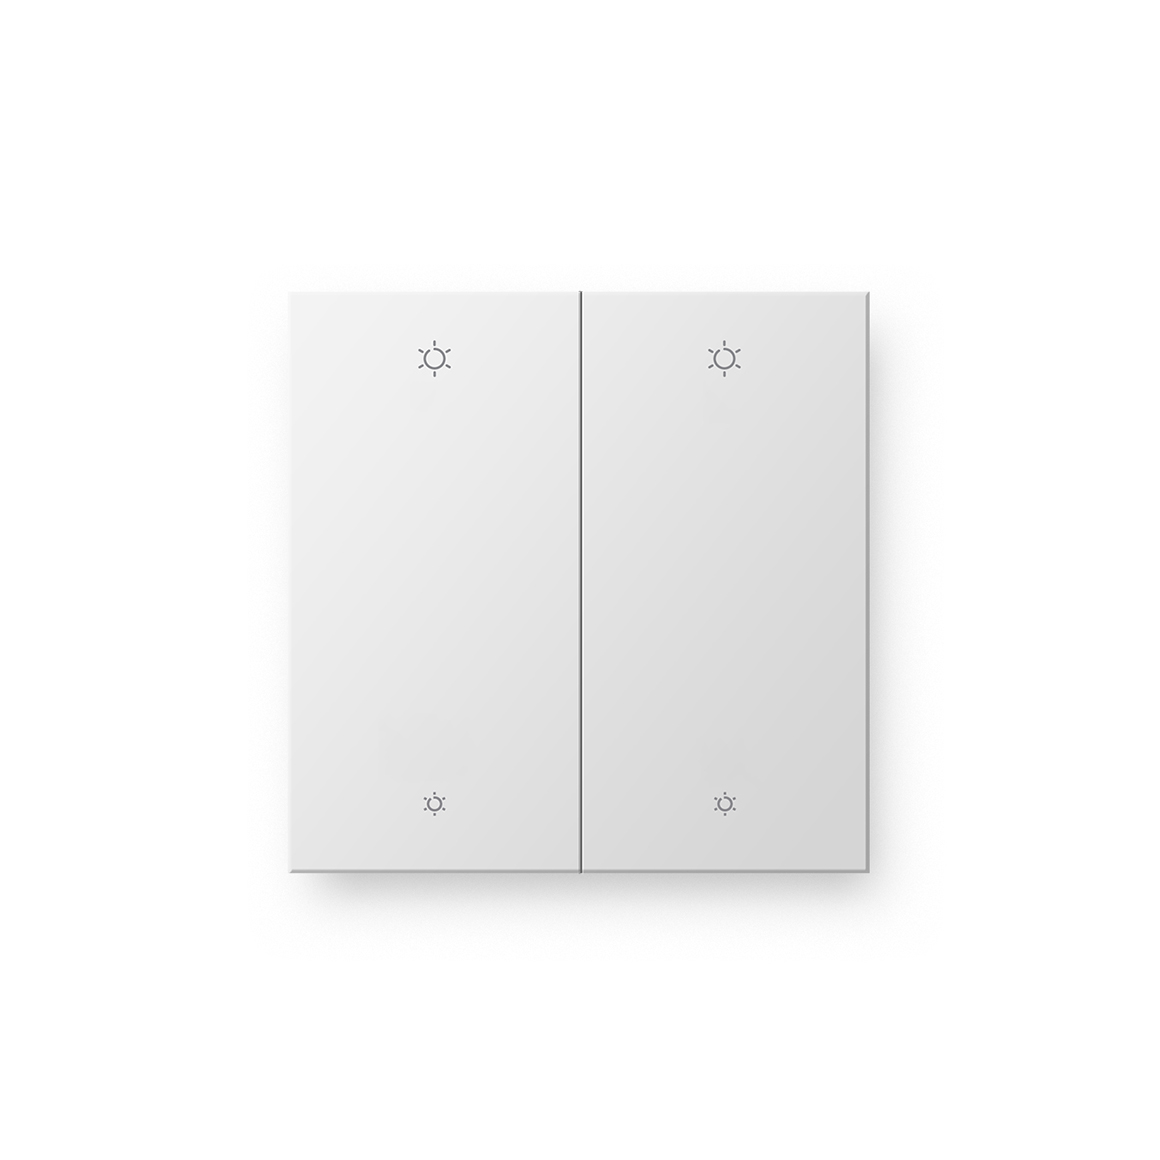 UK Dimmer Switch